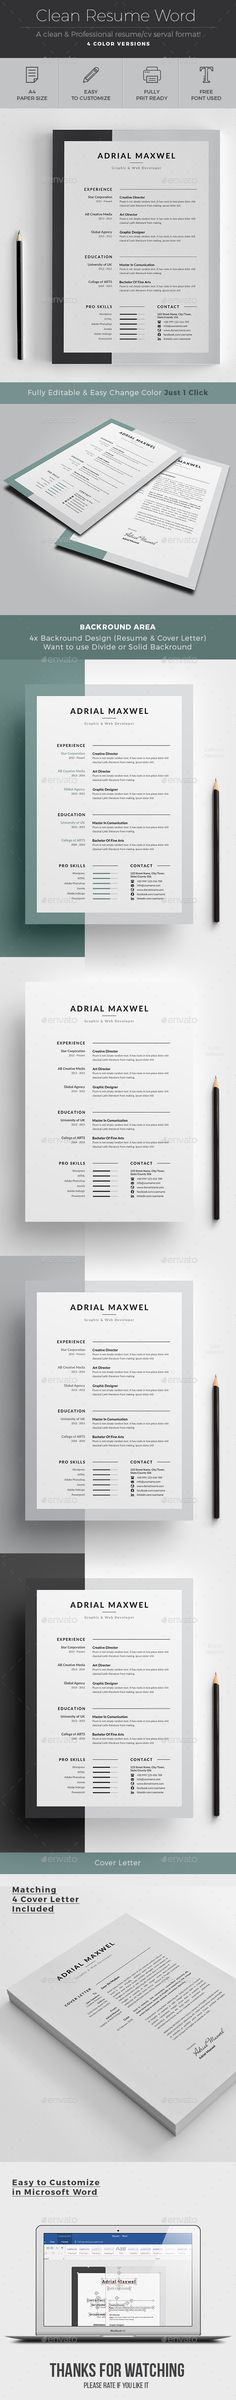 Resume 1095 best Design